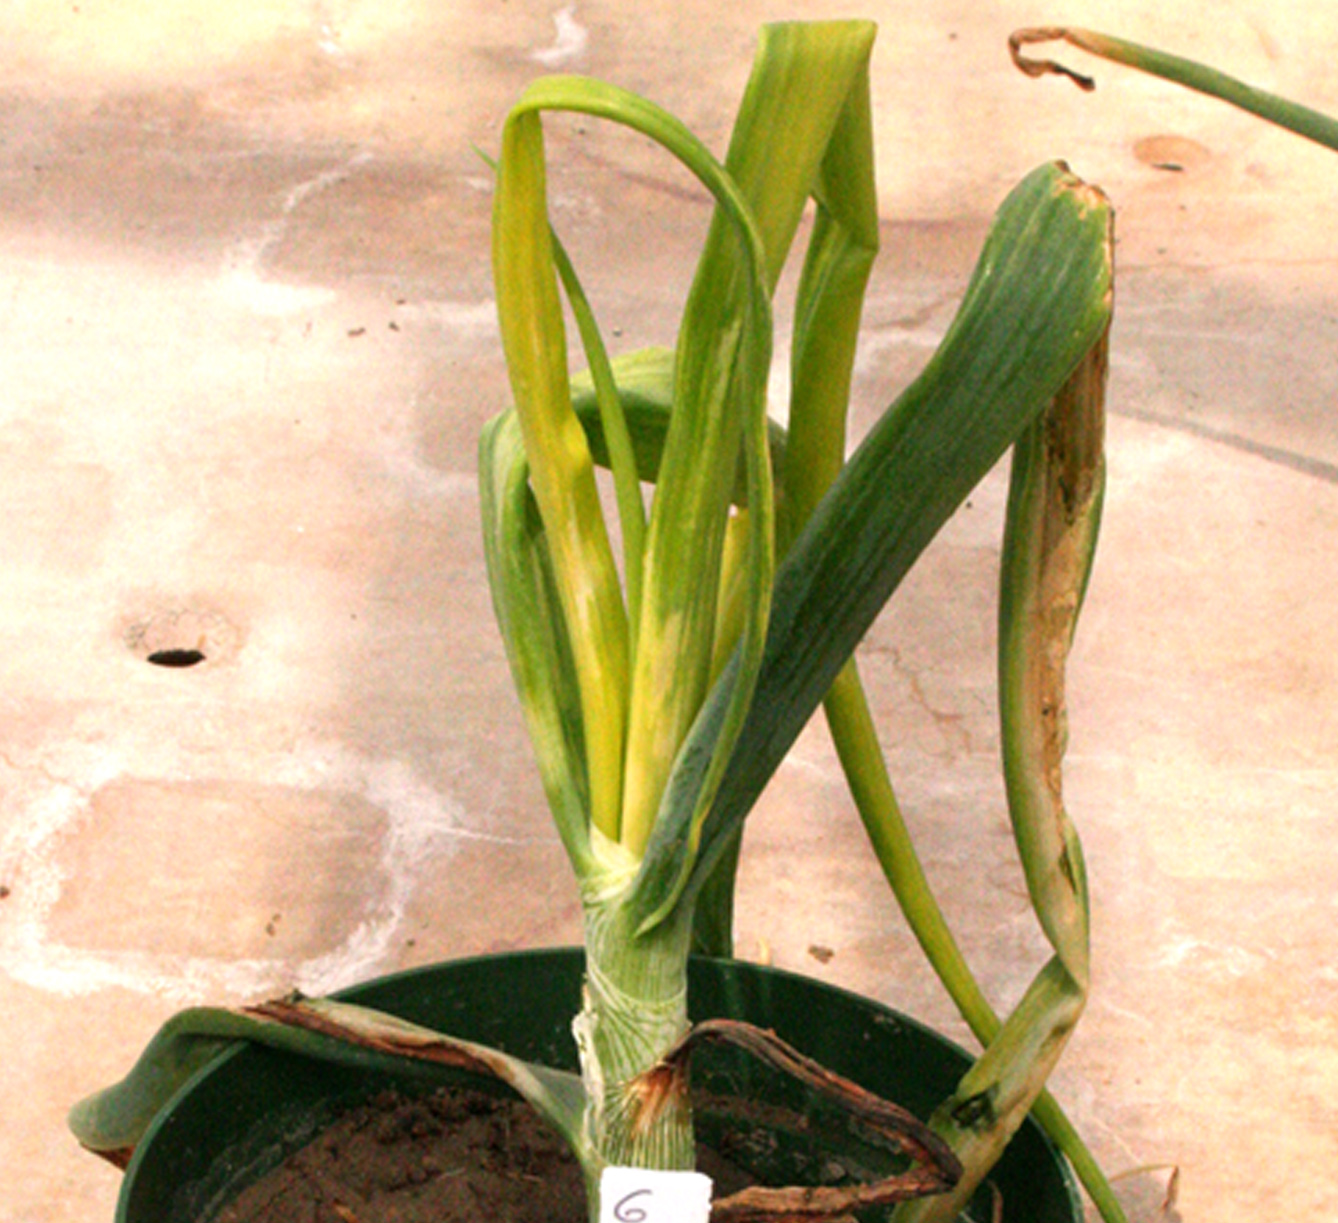 Pictured is an onion plant infected with yellow bud disease.